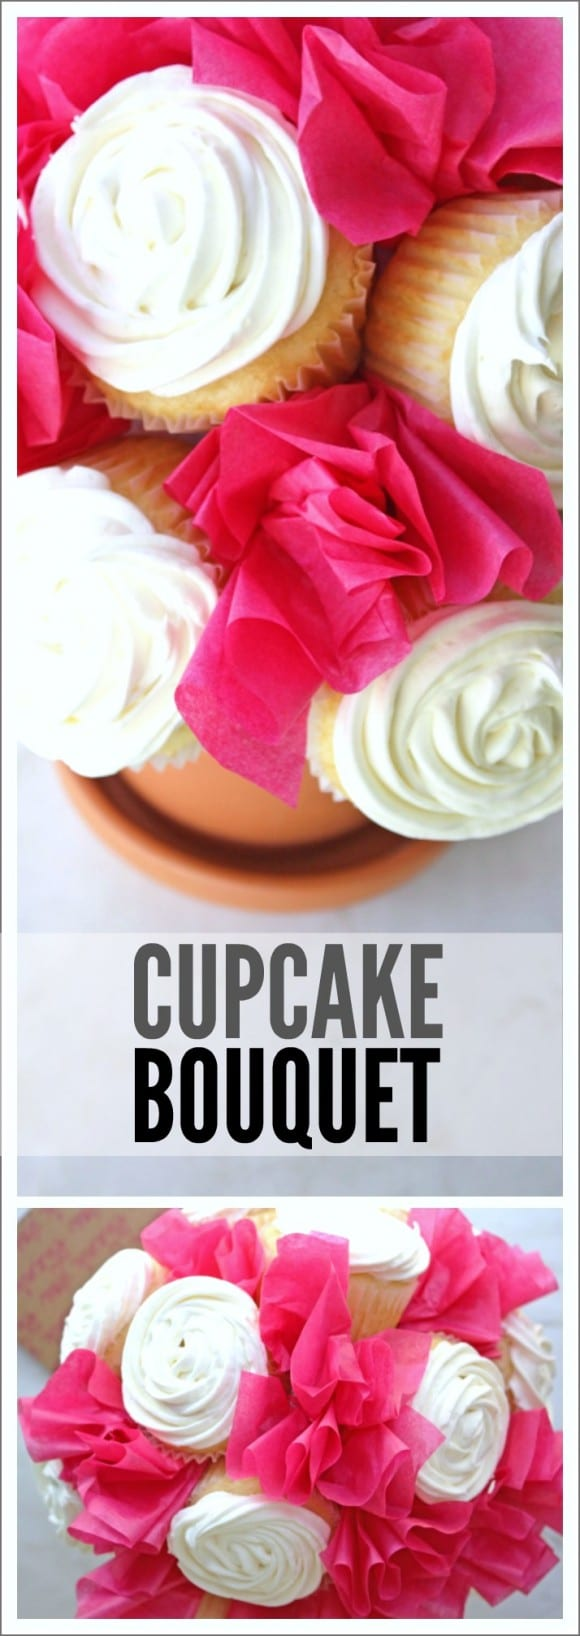 Learn to make this cupcake bouquet. It's perfect as a get well gift or party dessert! |CatchMyParty.com